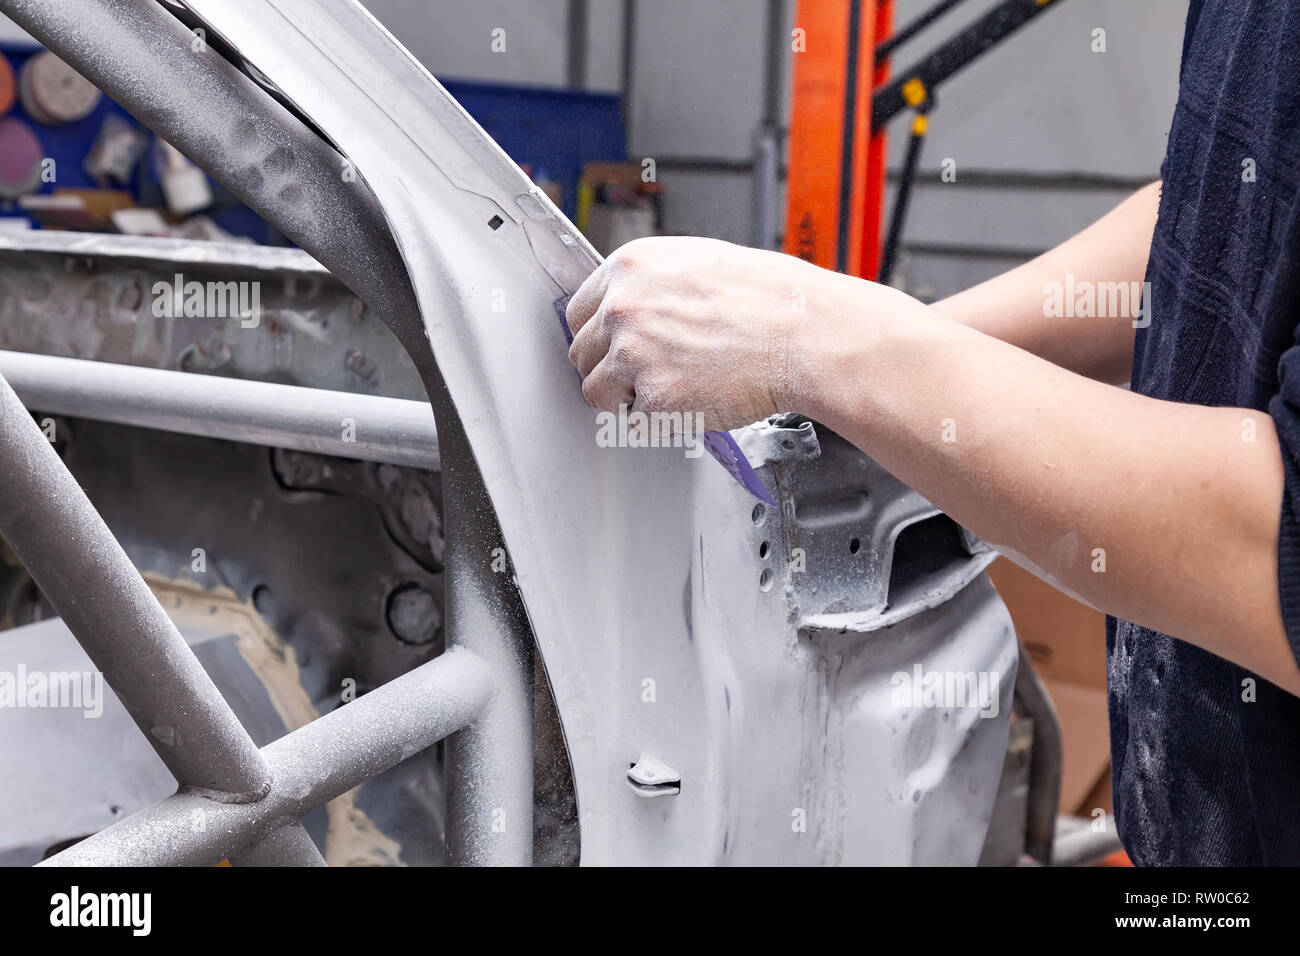 The body repairman grinds the white car's frame with purple emery paper in preparation for painting after applying putty in a vehicle repair workshop  - Stock Image